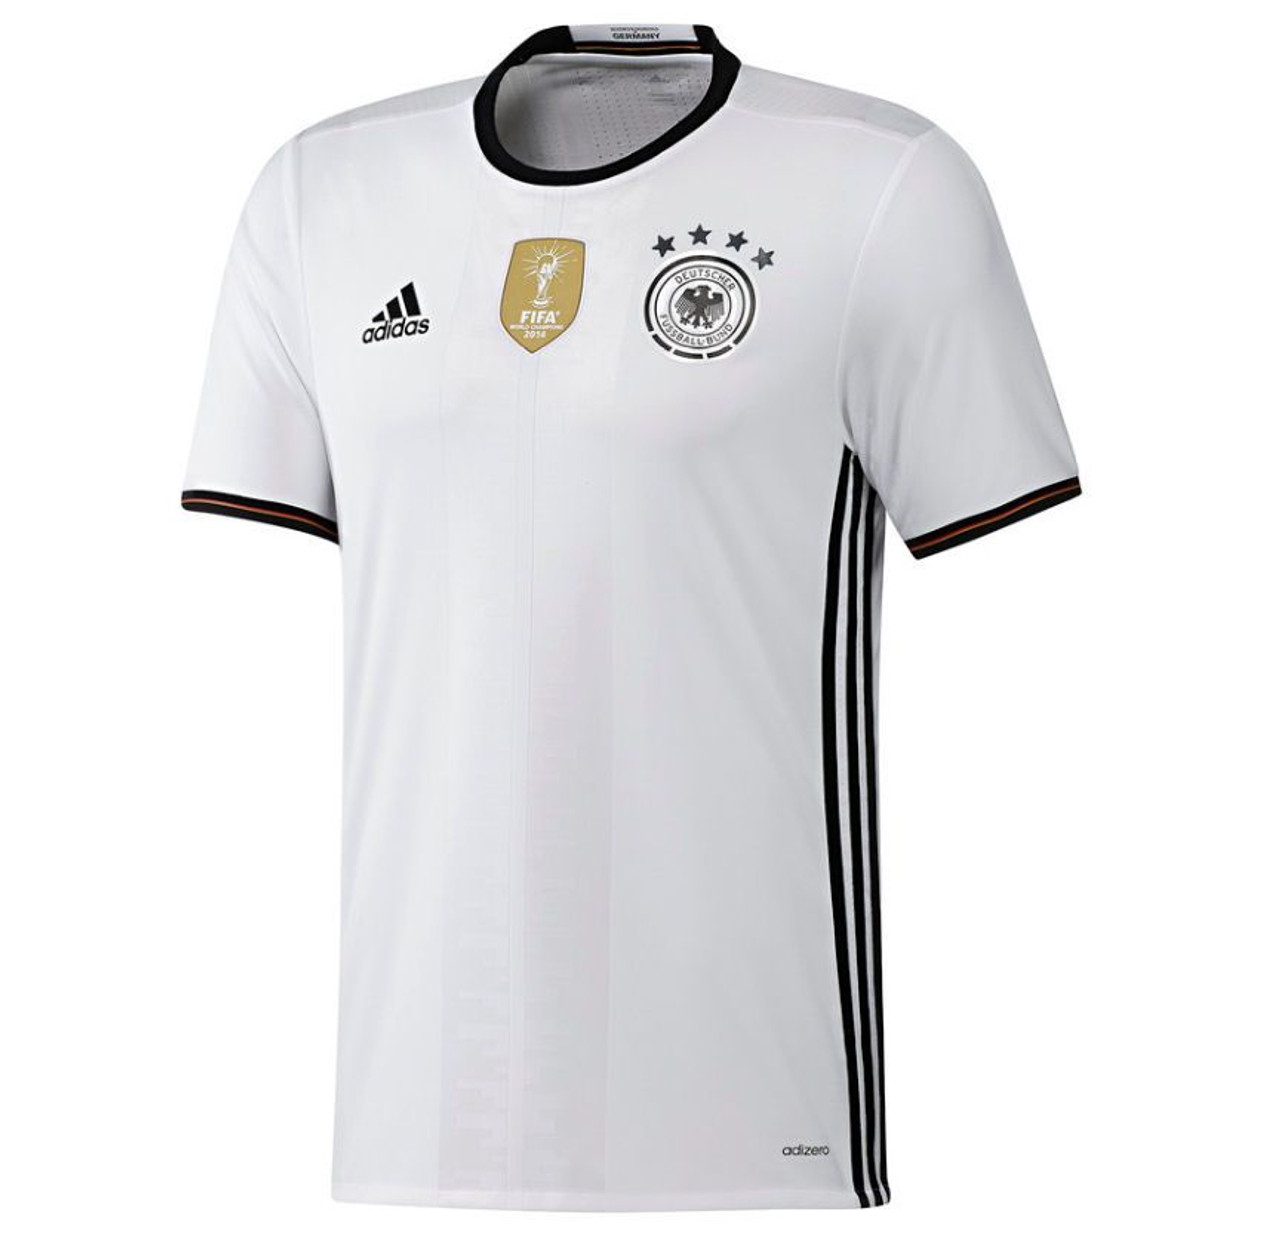 28b72b2f374 Adidas Germany Jersey 2016 17 -White Black (11218) - ohp soccer